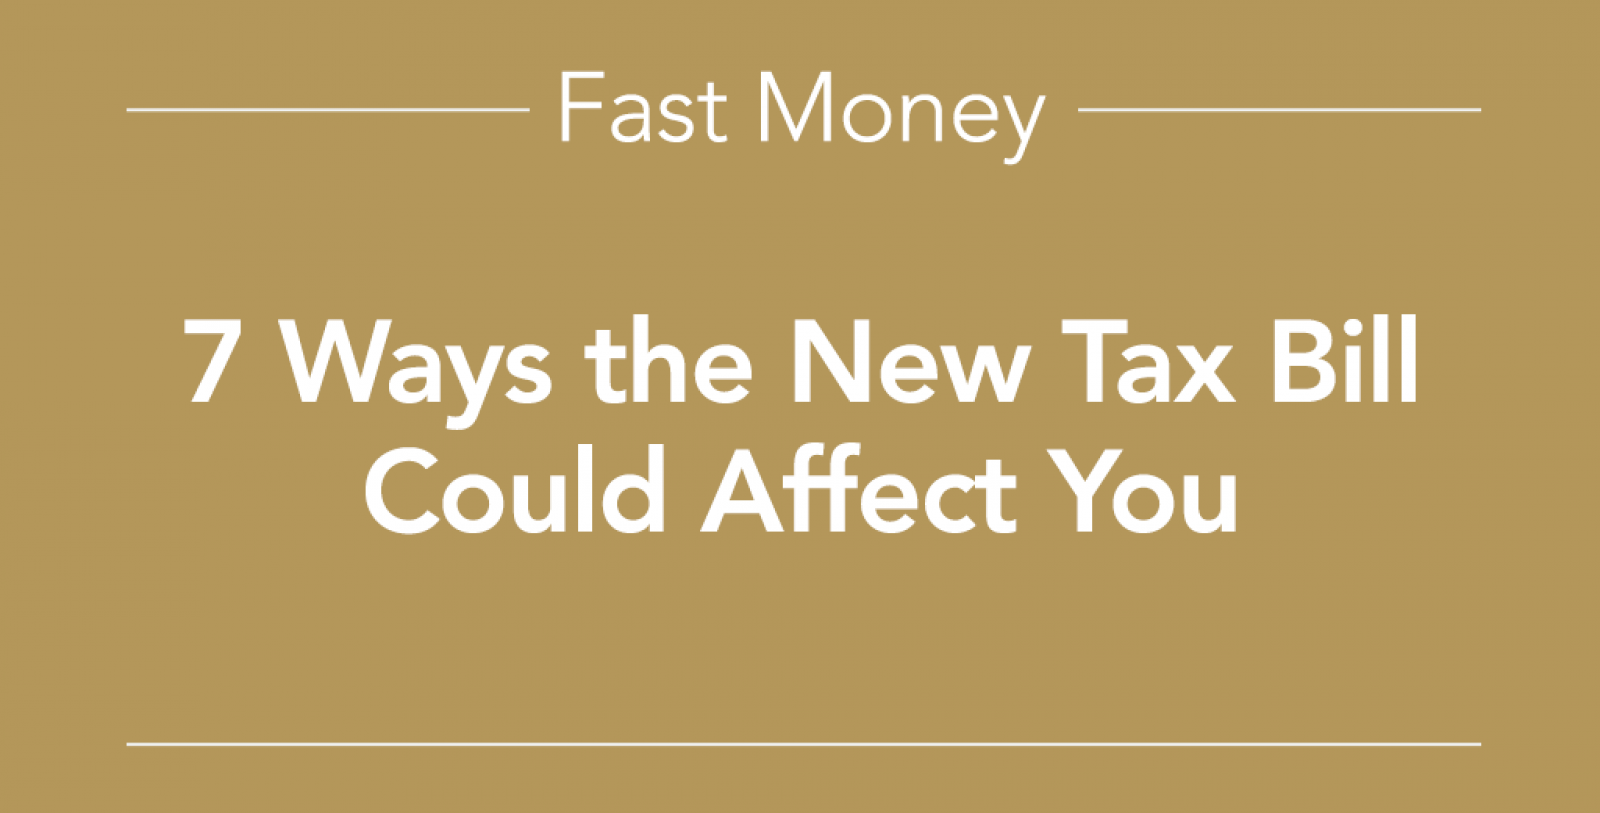 7 ways the new tax law could affect you